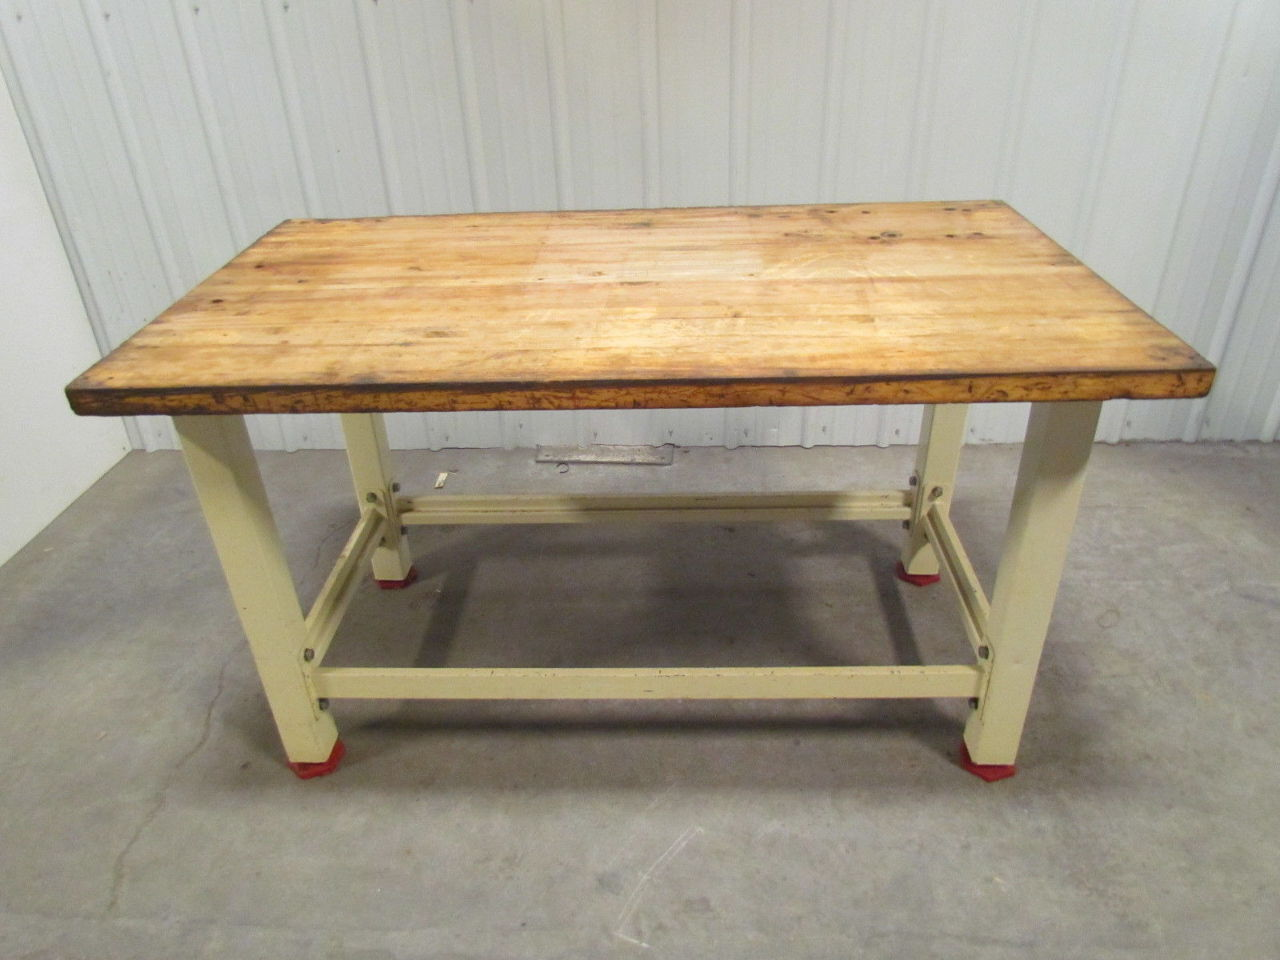 Heavy Duty Butcher Block Top Workbench Table Bolted Steel Frame 60x34x34 Ebay